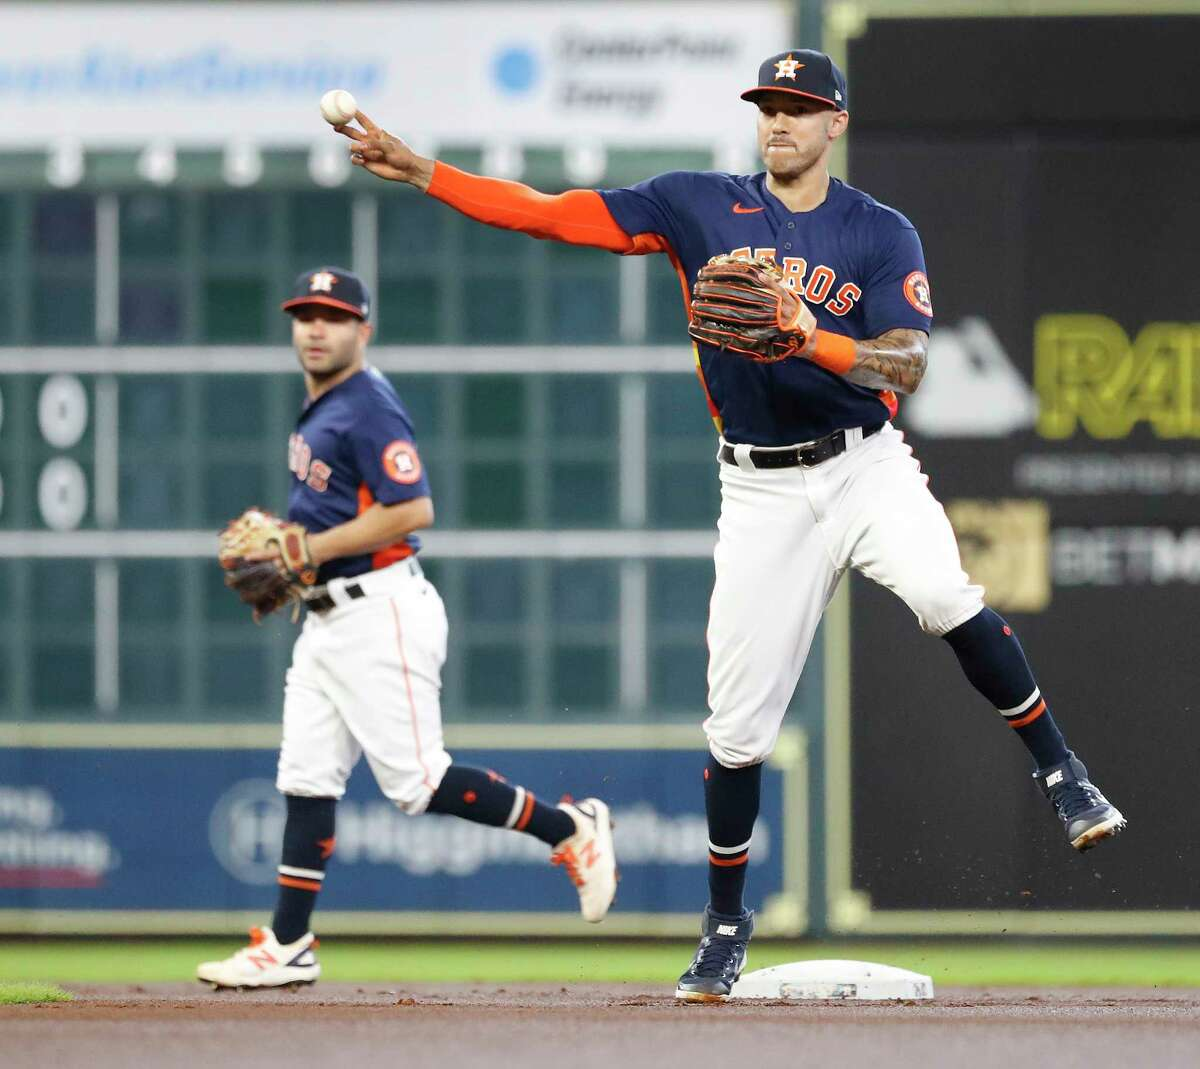 Houston Astros shortstop Carlos Correa (1) makes the throw to first base as Seattle Mariners Ty France ground out to end the top of the first inning of an MLB baseball game at Minute Maid Park, Sunday, August 22, 2021, in Houston.